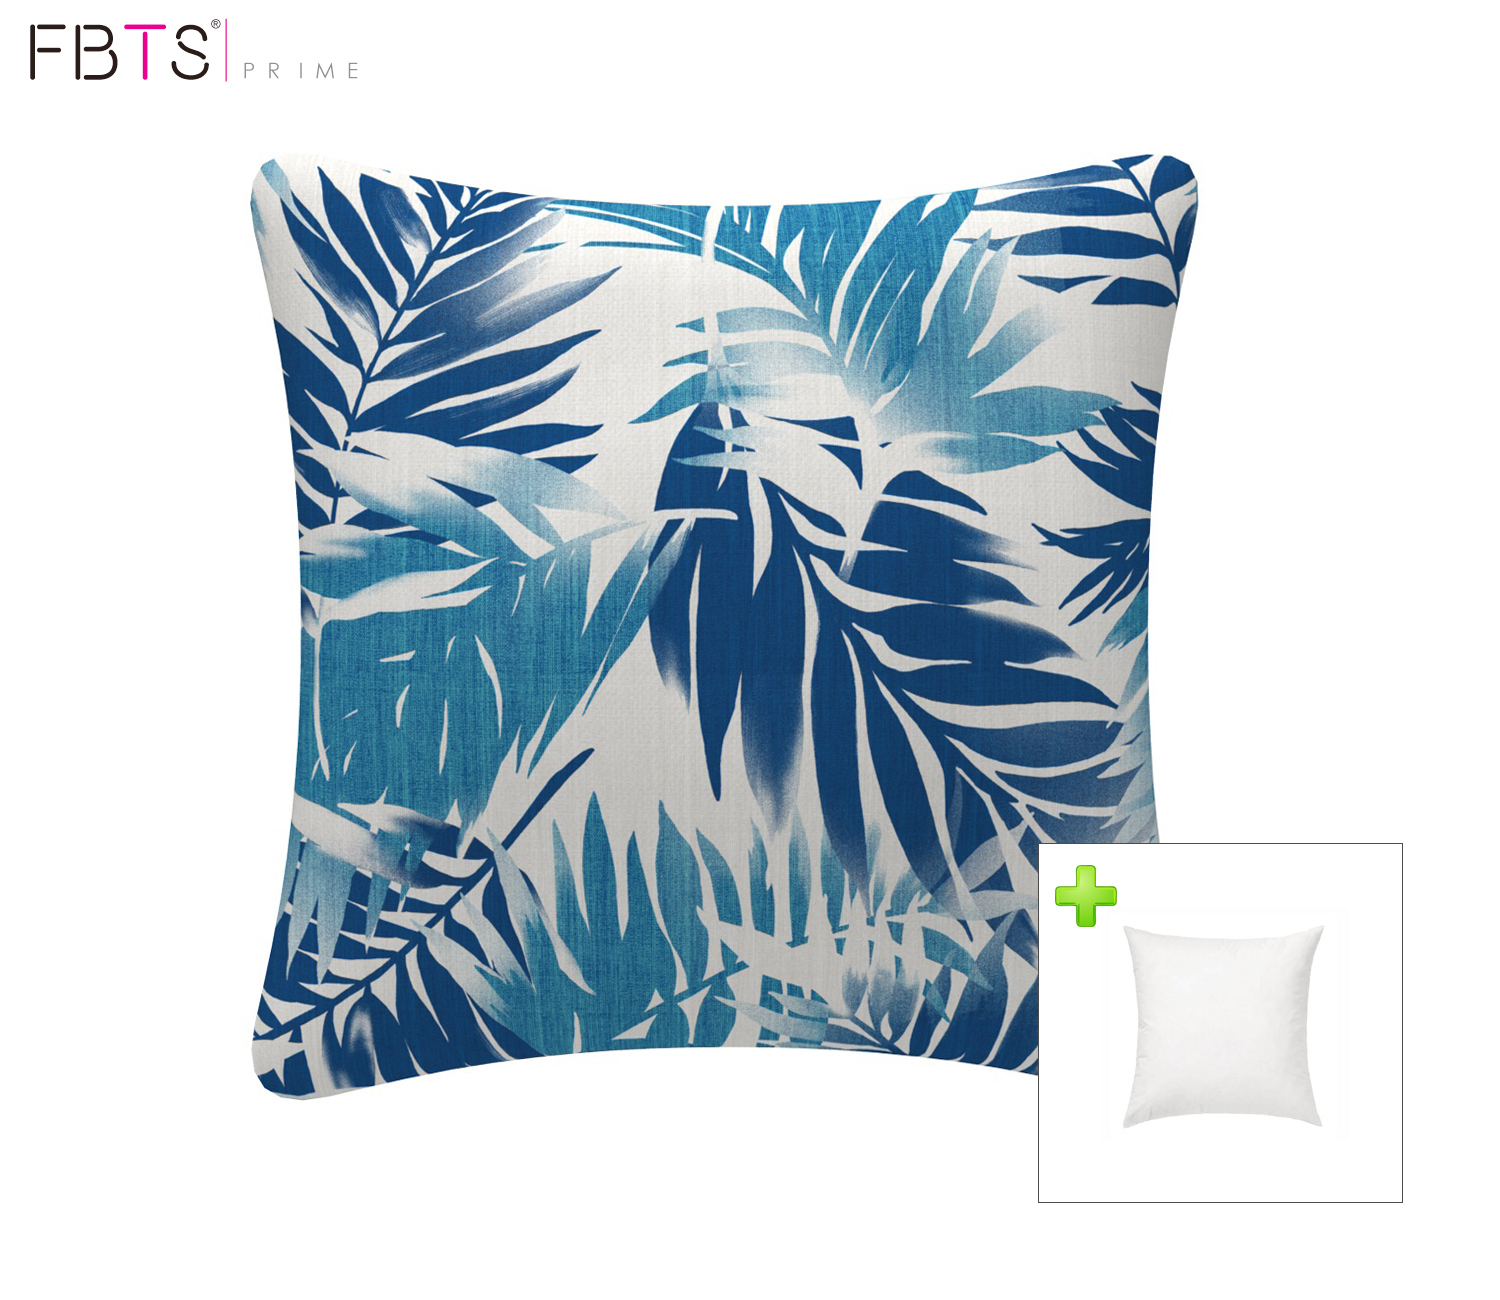 fbts prime outdoor decorative pillows with insert blue leaf patio accent pillows throw covers 18x18 inches square patio cushions for couch bed sofa